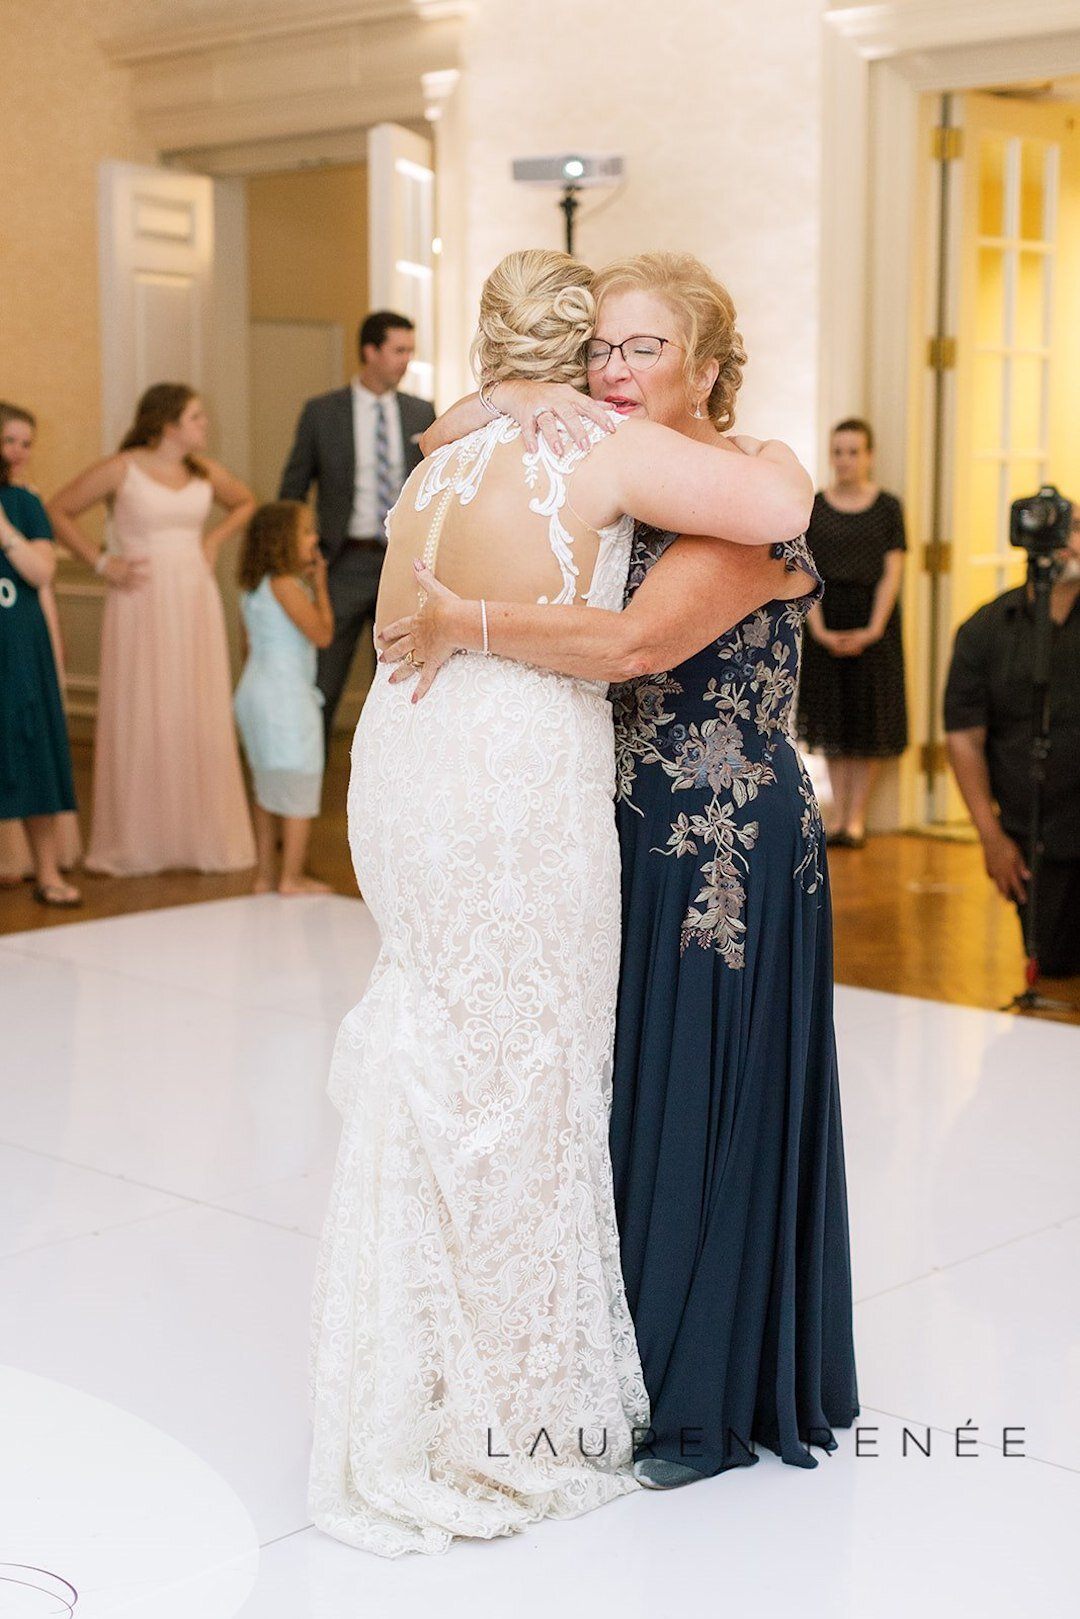 Mother daughter dance: Romantic Blush Wedding at the Pittsburgh Field Club planned by Exhale Events. See more at exhale-events.com!